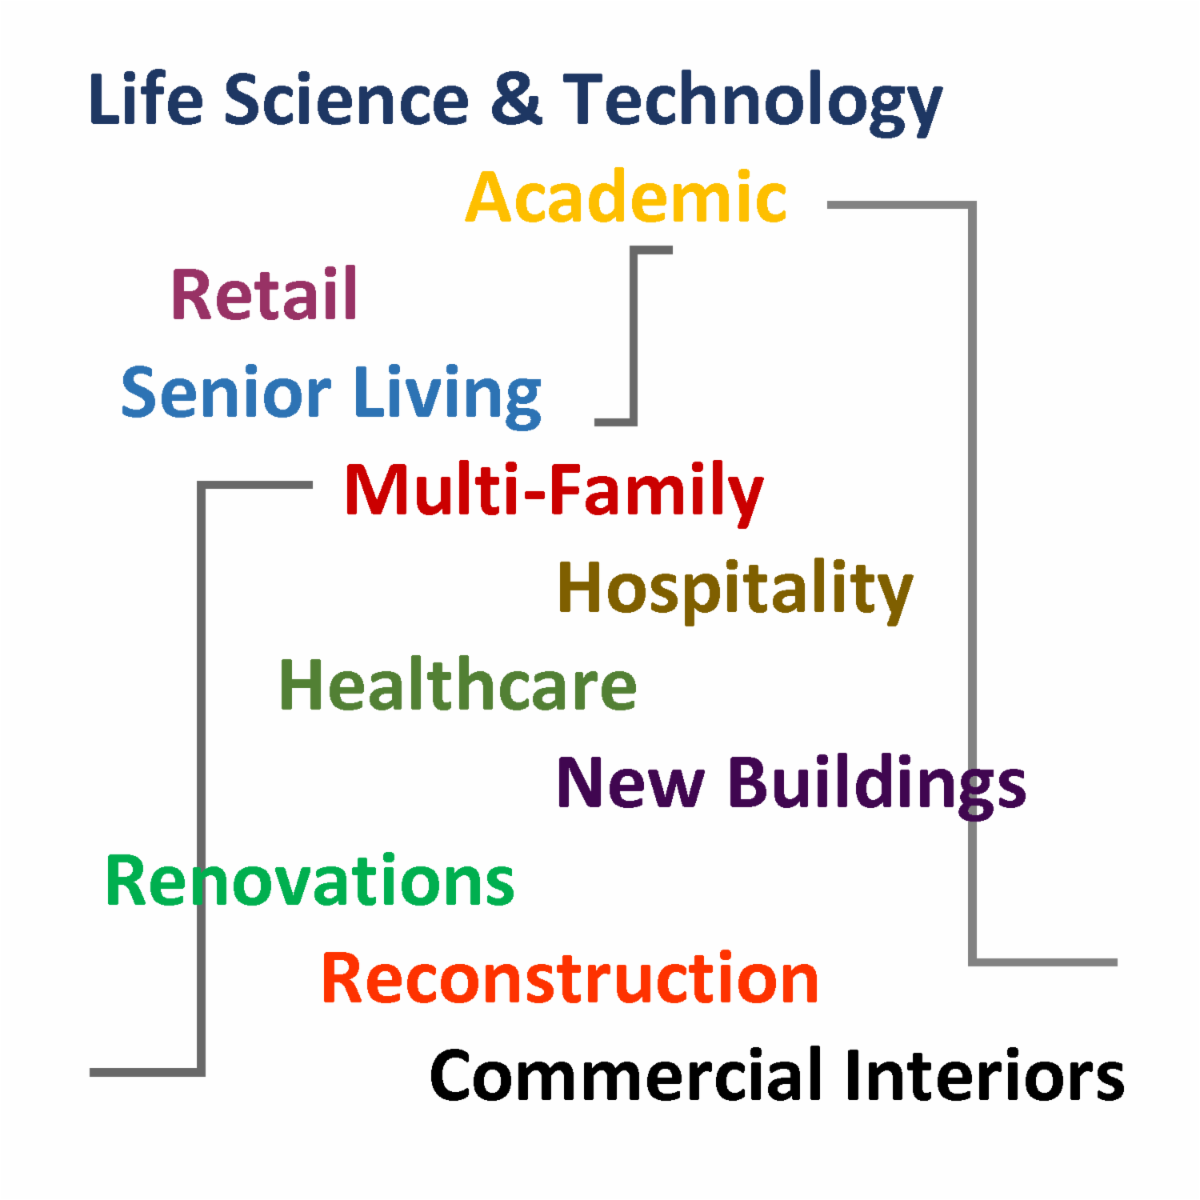 click to view detail on our project sectors